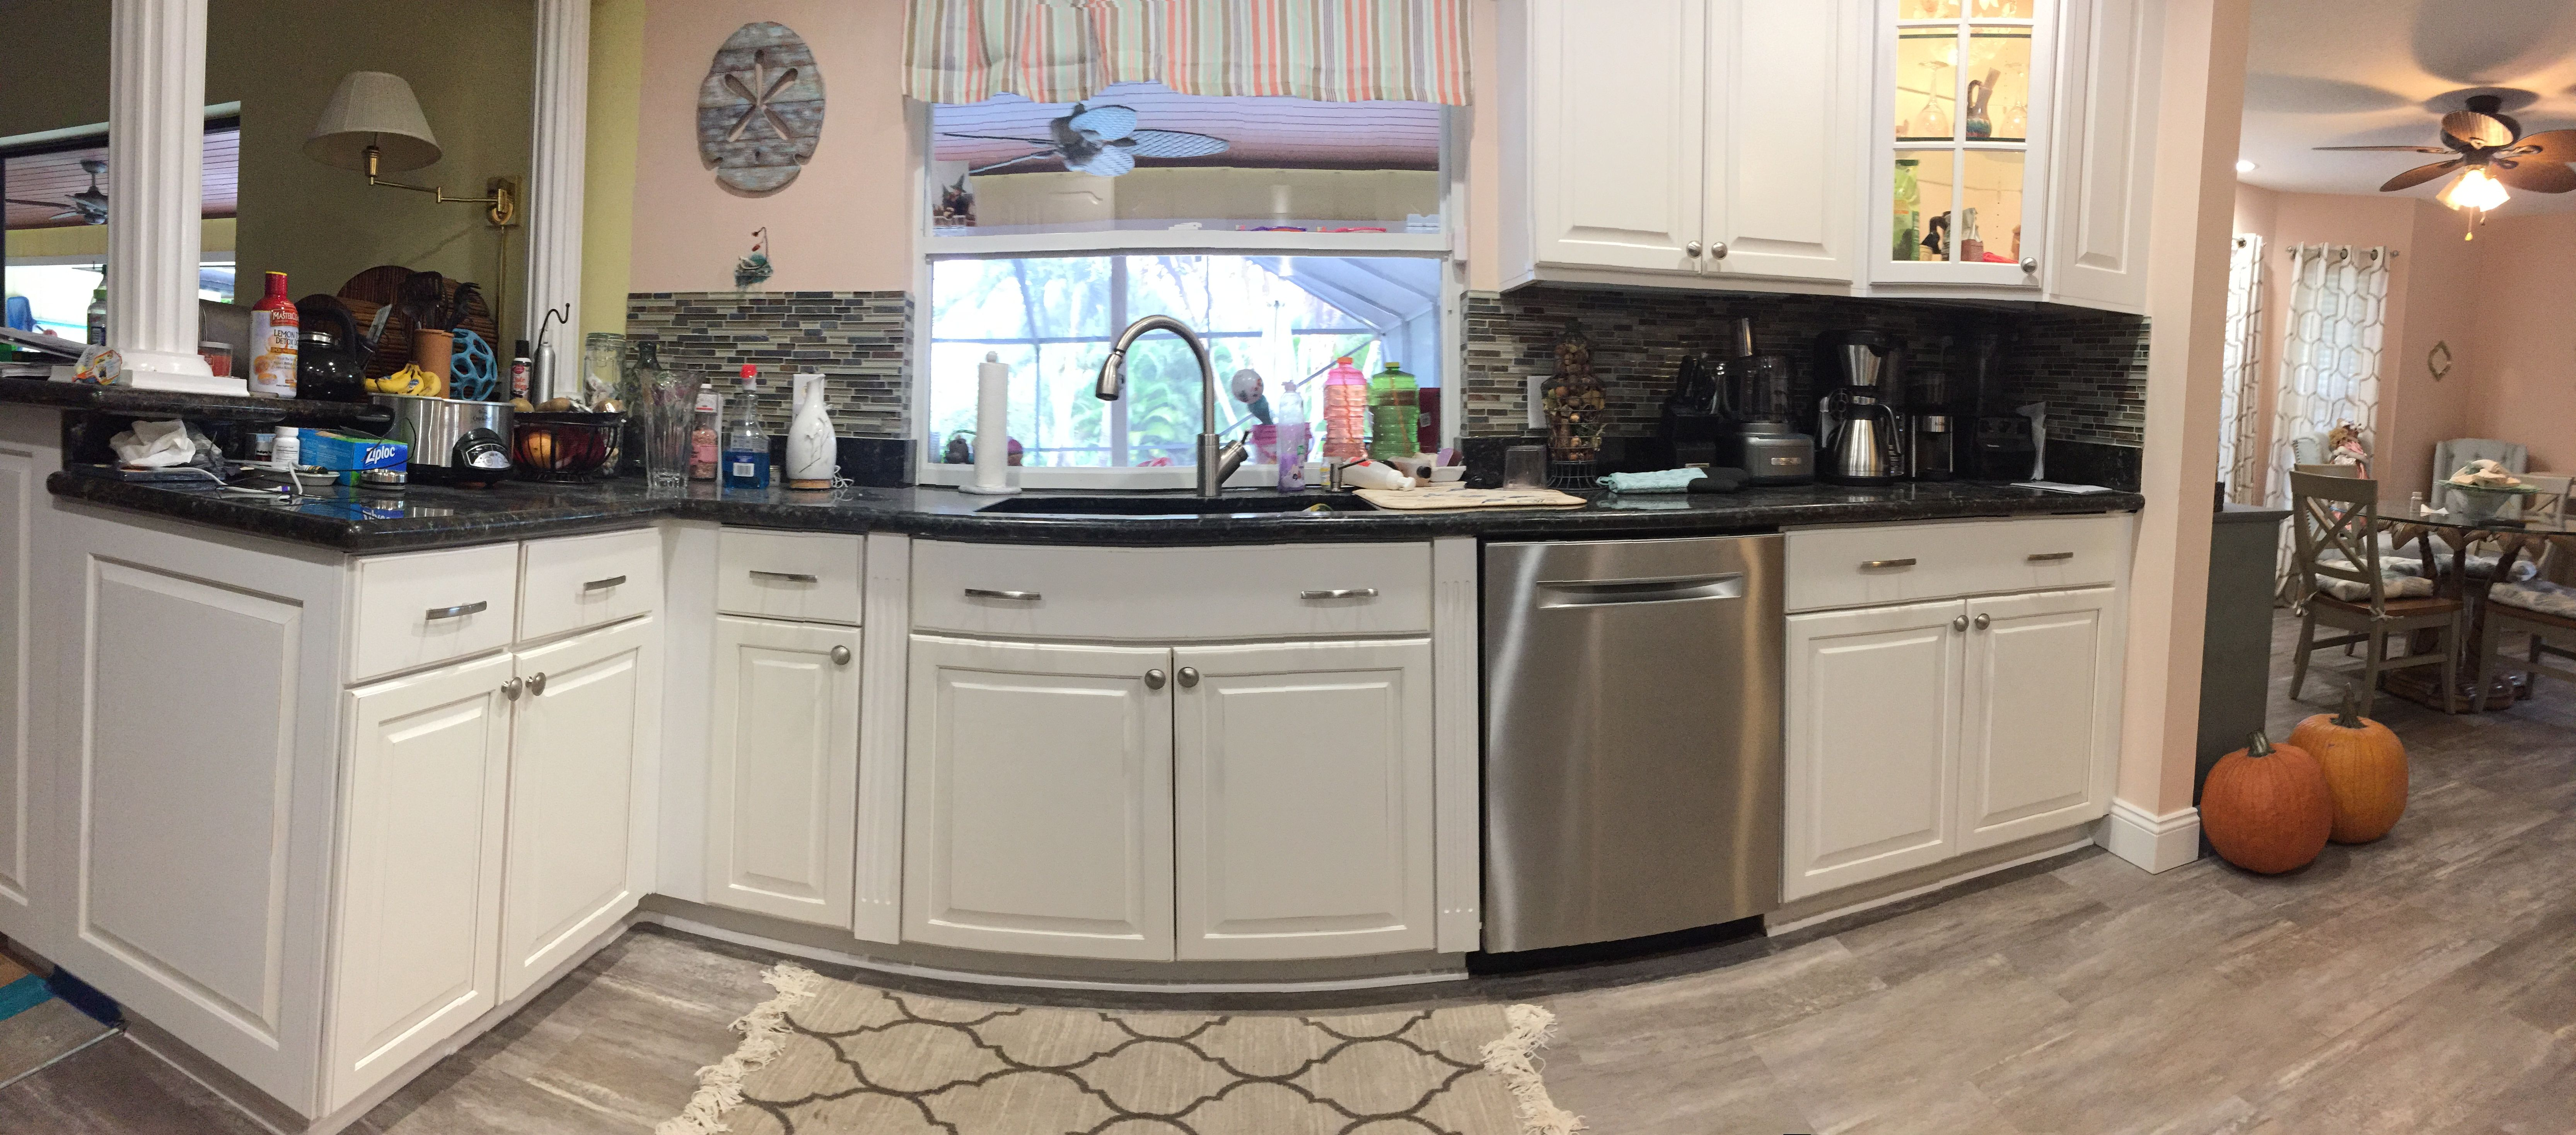 Just Finished These Kitchen Cabinets Located In Jensen Beach Kitchen Cabinets Painting Kitchen Cabinets Refinishing Cabinets